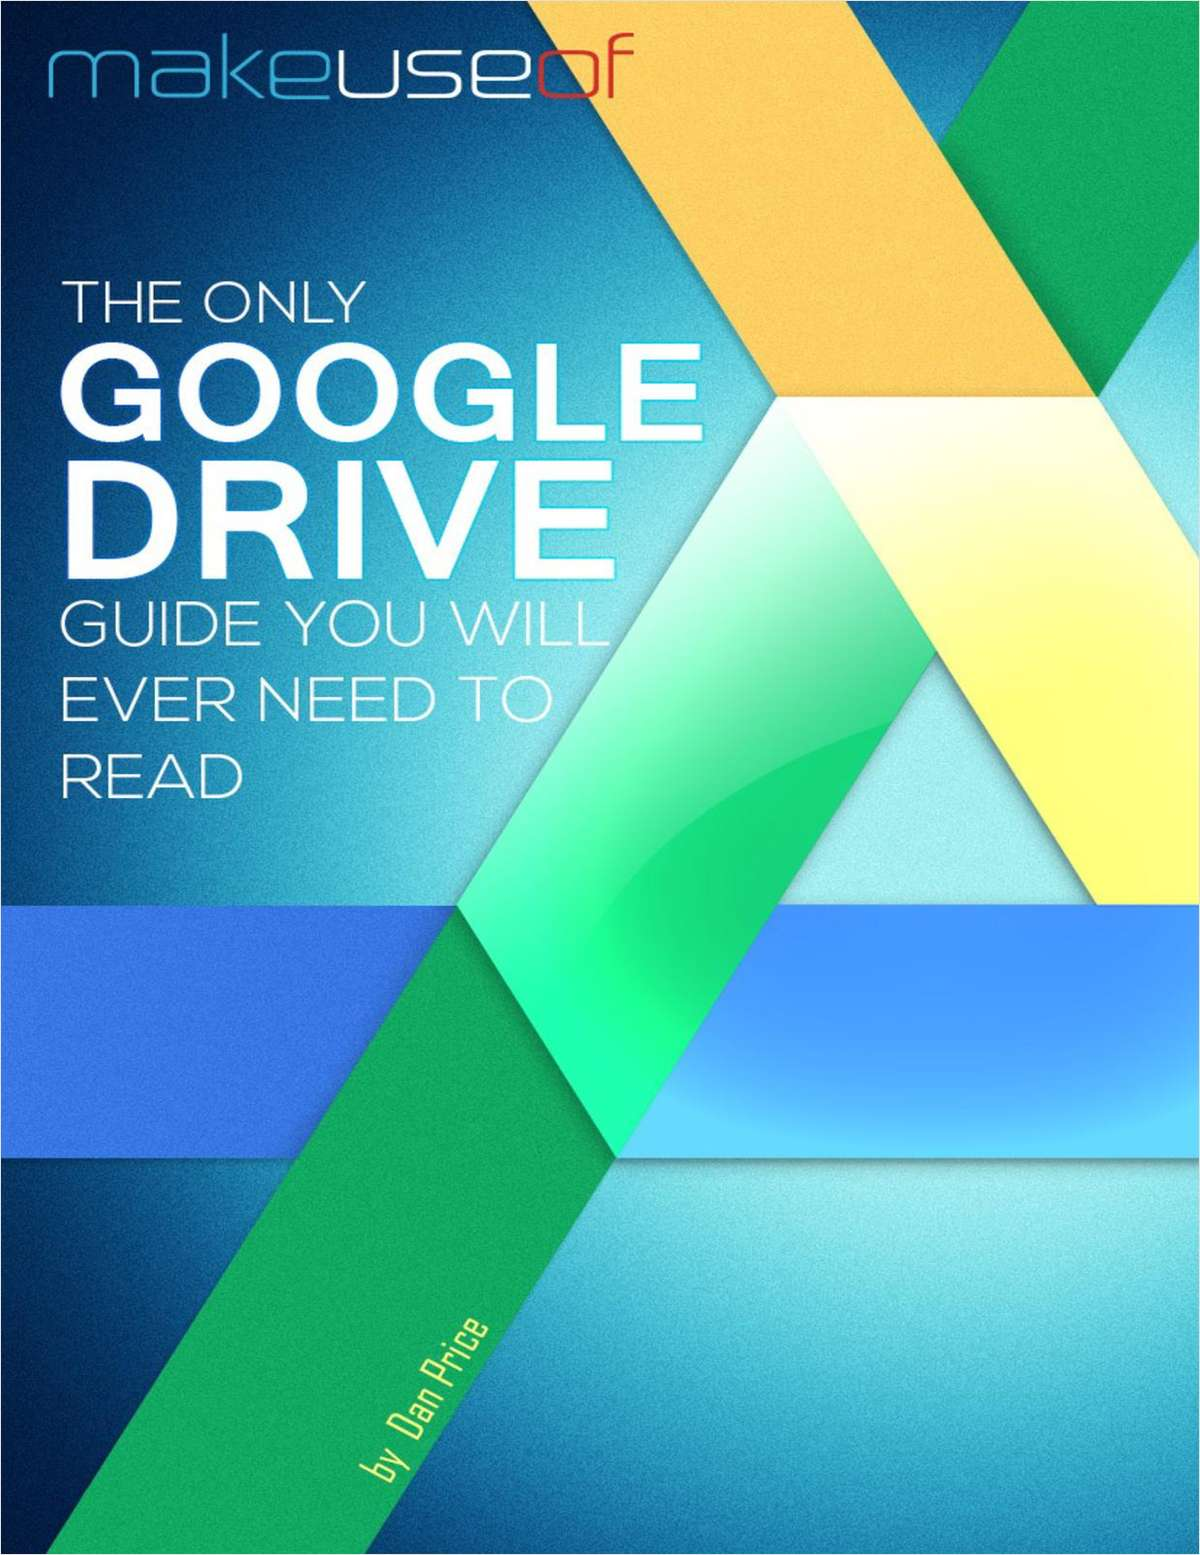 The Only Google Drive Guide You Will Ever Need to Read